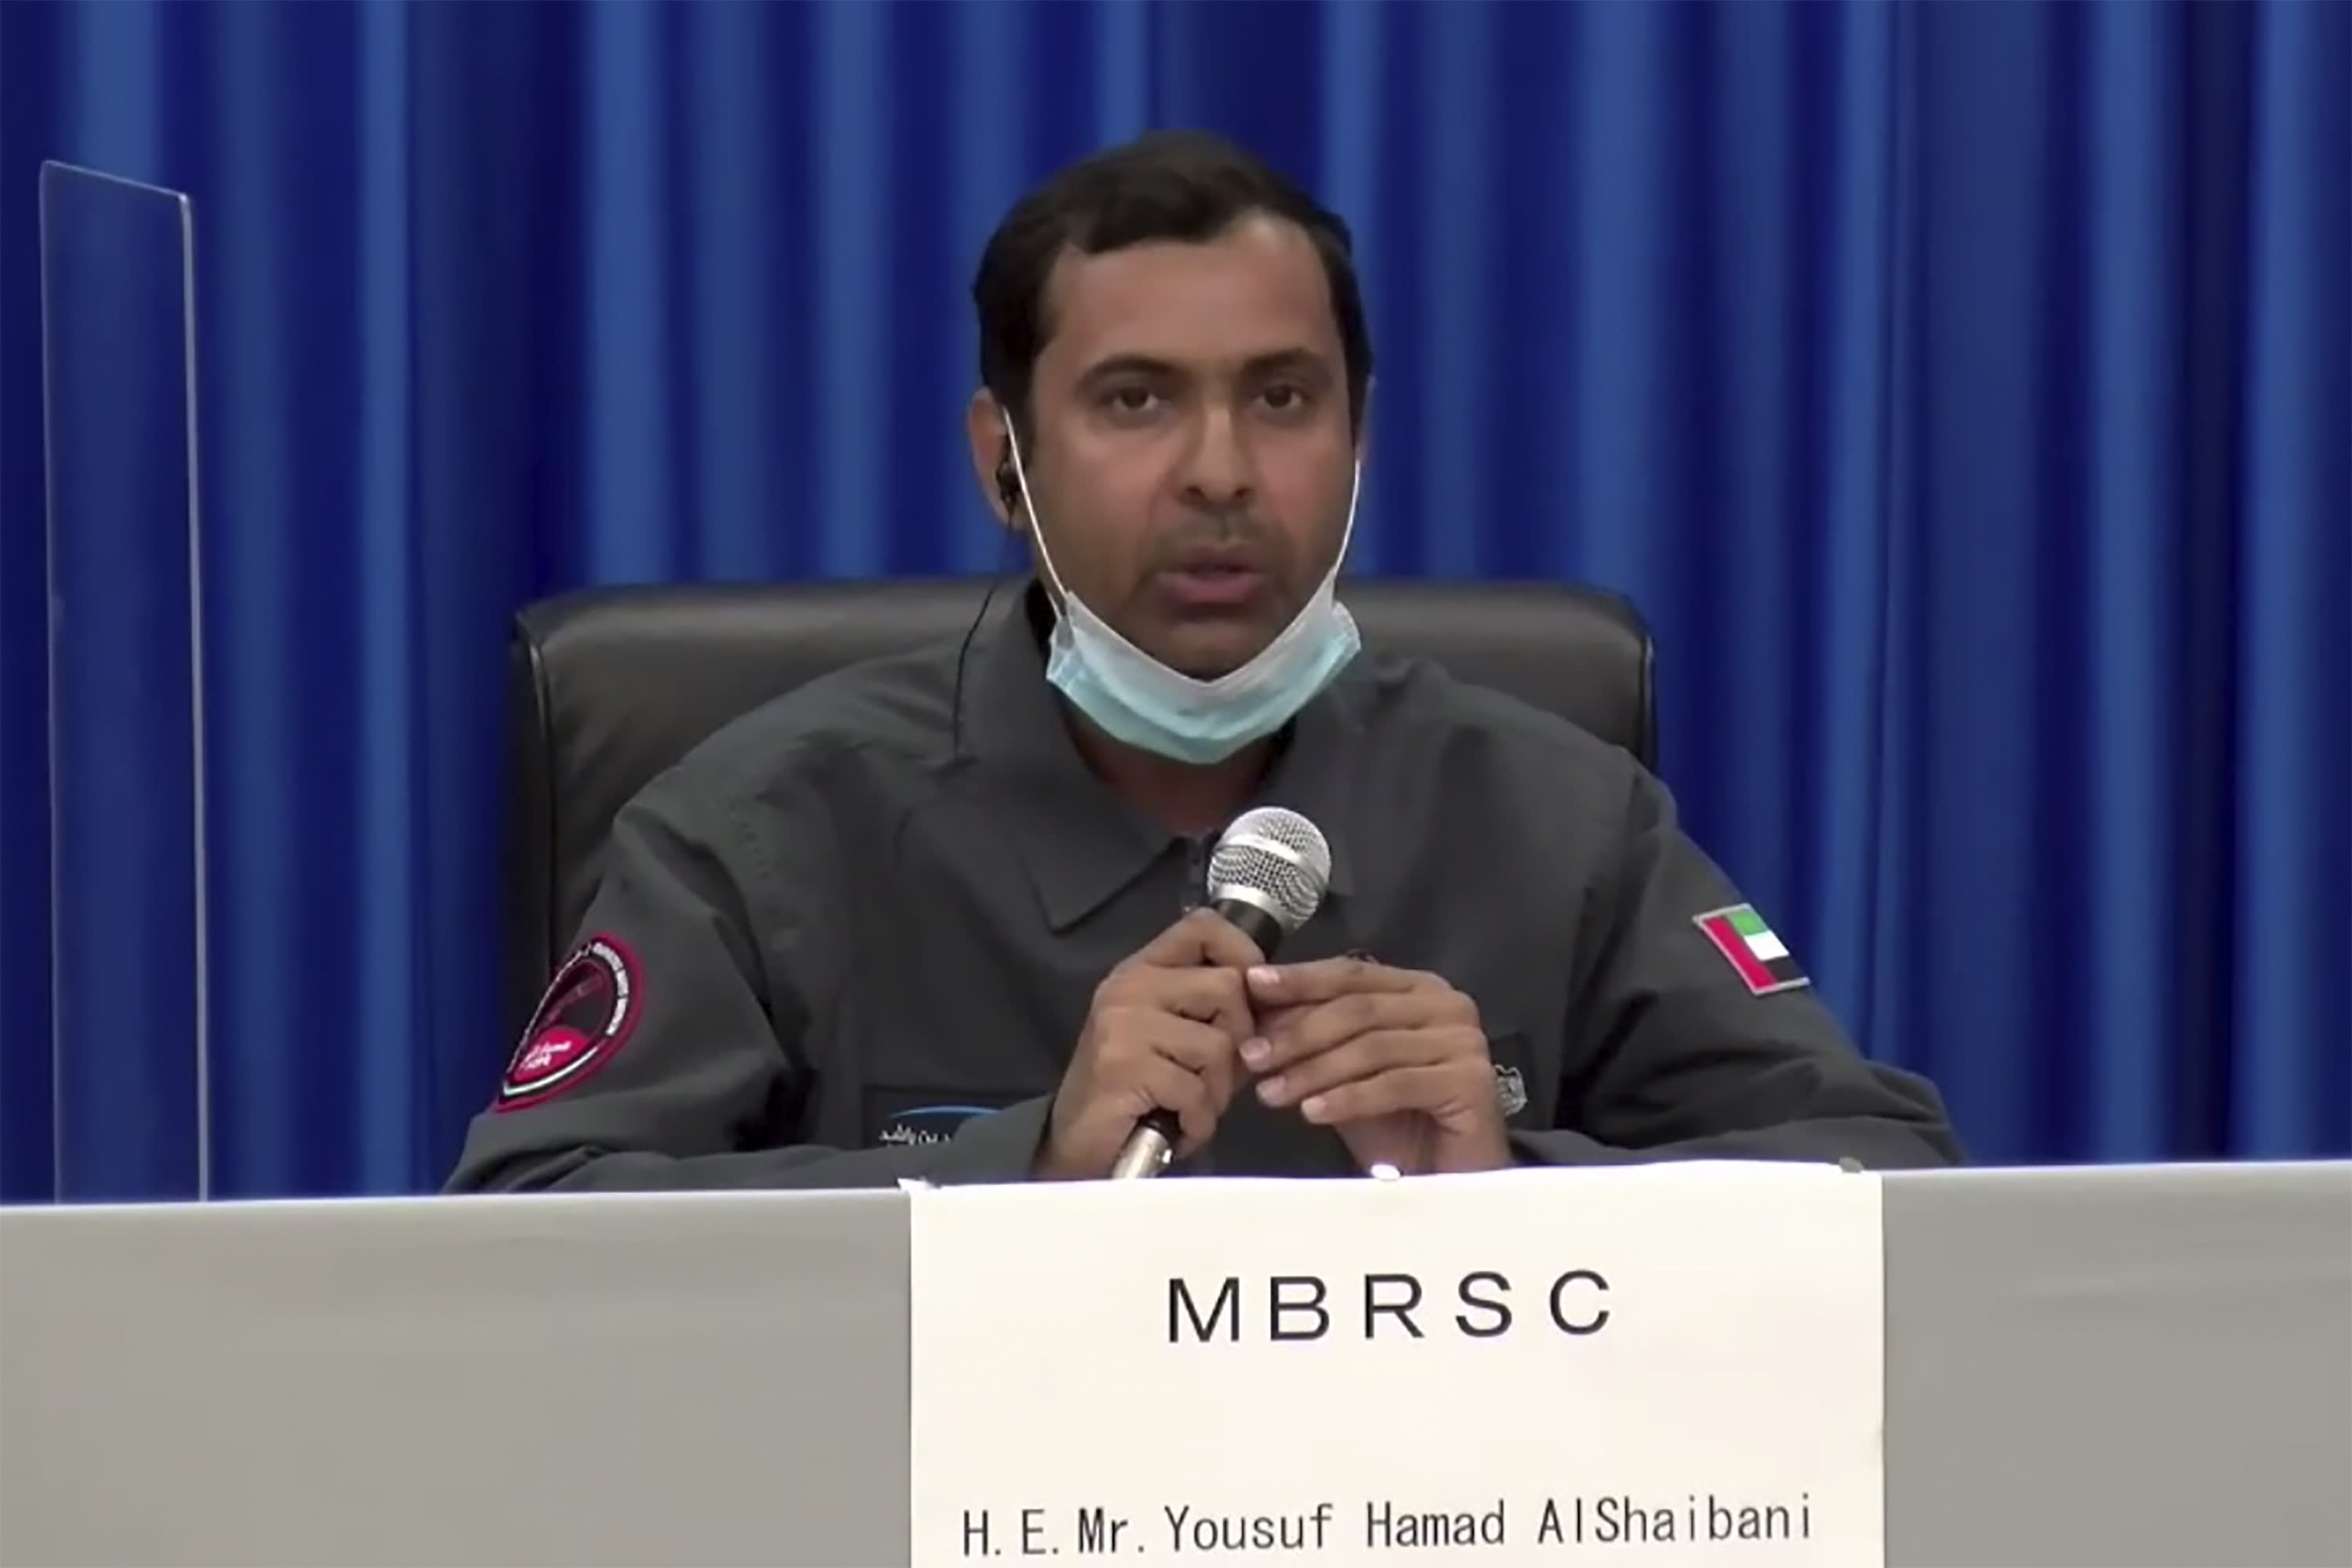 In this image made from a video, Yousuf Hamad AlShaibani of Mohammed bin Rashid Space Center attends a news conference at Tanegashima Space Center on a small southern Japanese island after a launch of a United Arab Emirates spacecraft Monday, July 20, 2020. A United Arab Emirates spacecraft rocketed away Monday on a seven-month journey to Mars, kicking off the Arab world's first interplanetary mission. (MHI via AP Photo)